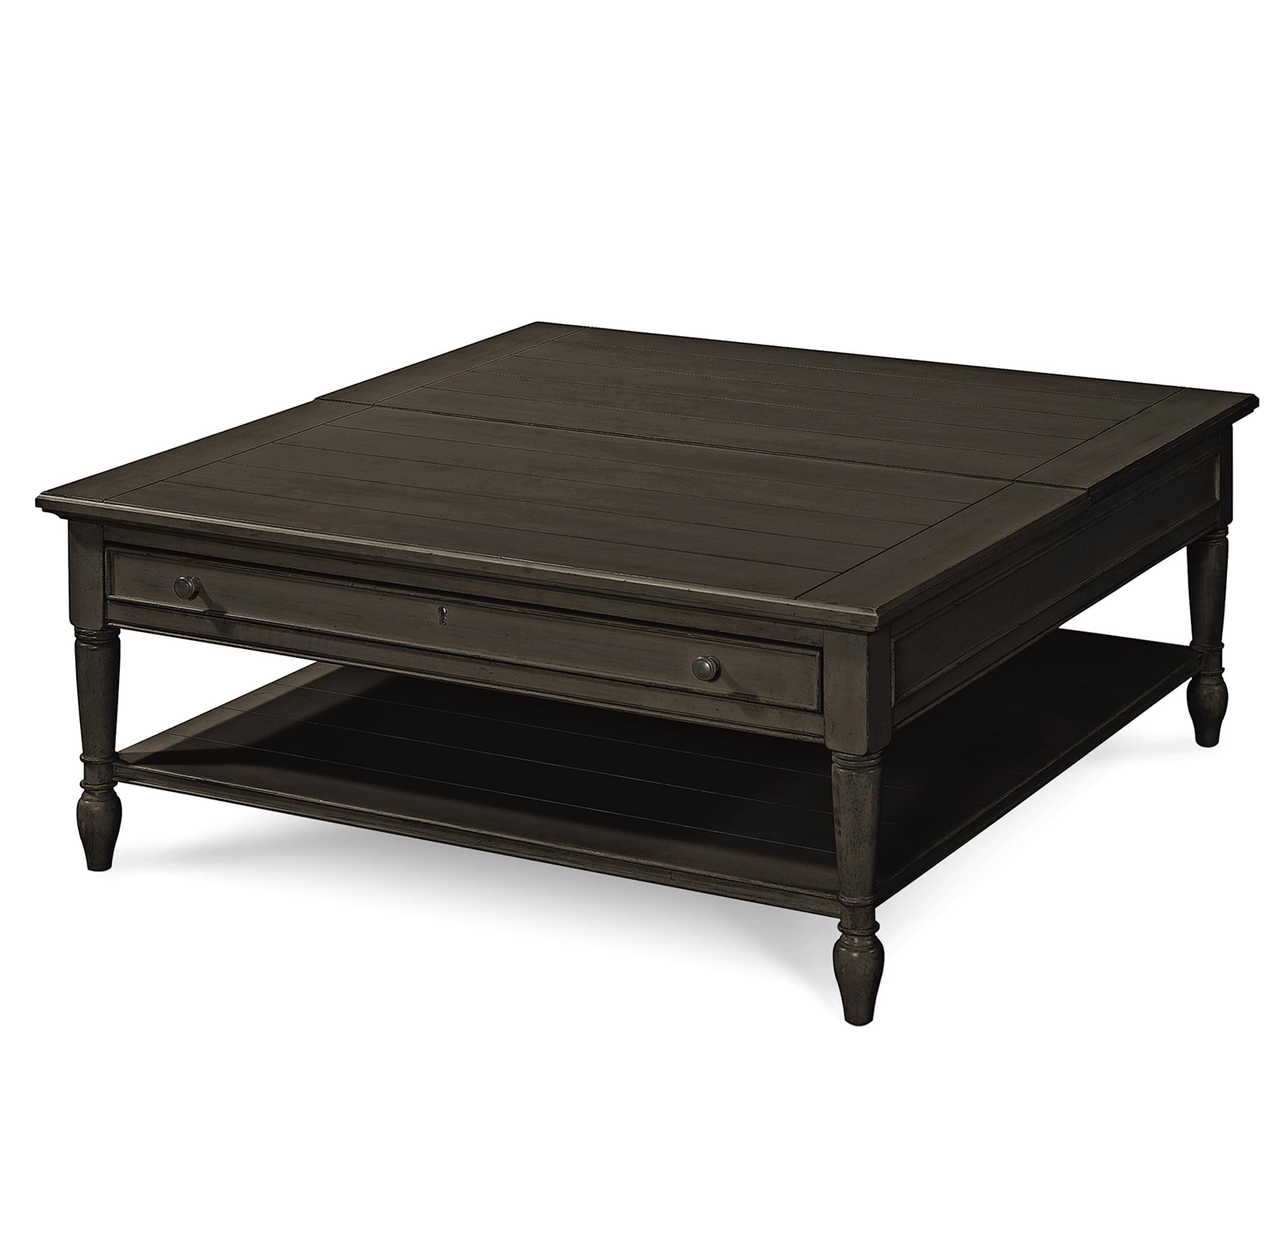 Country Chic Black Wood Square Coffee Table With Lift Top Zin Home